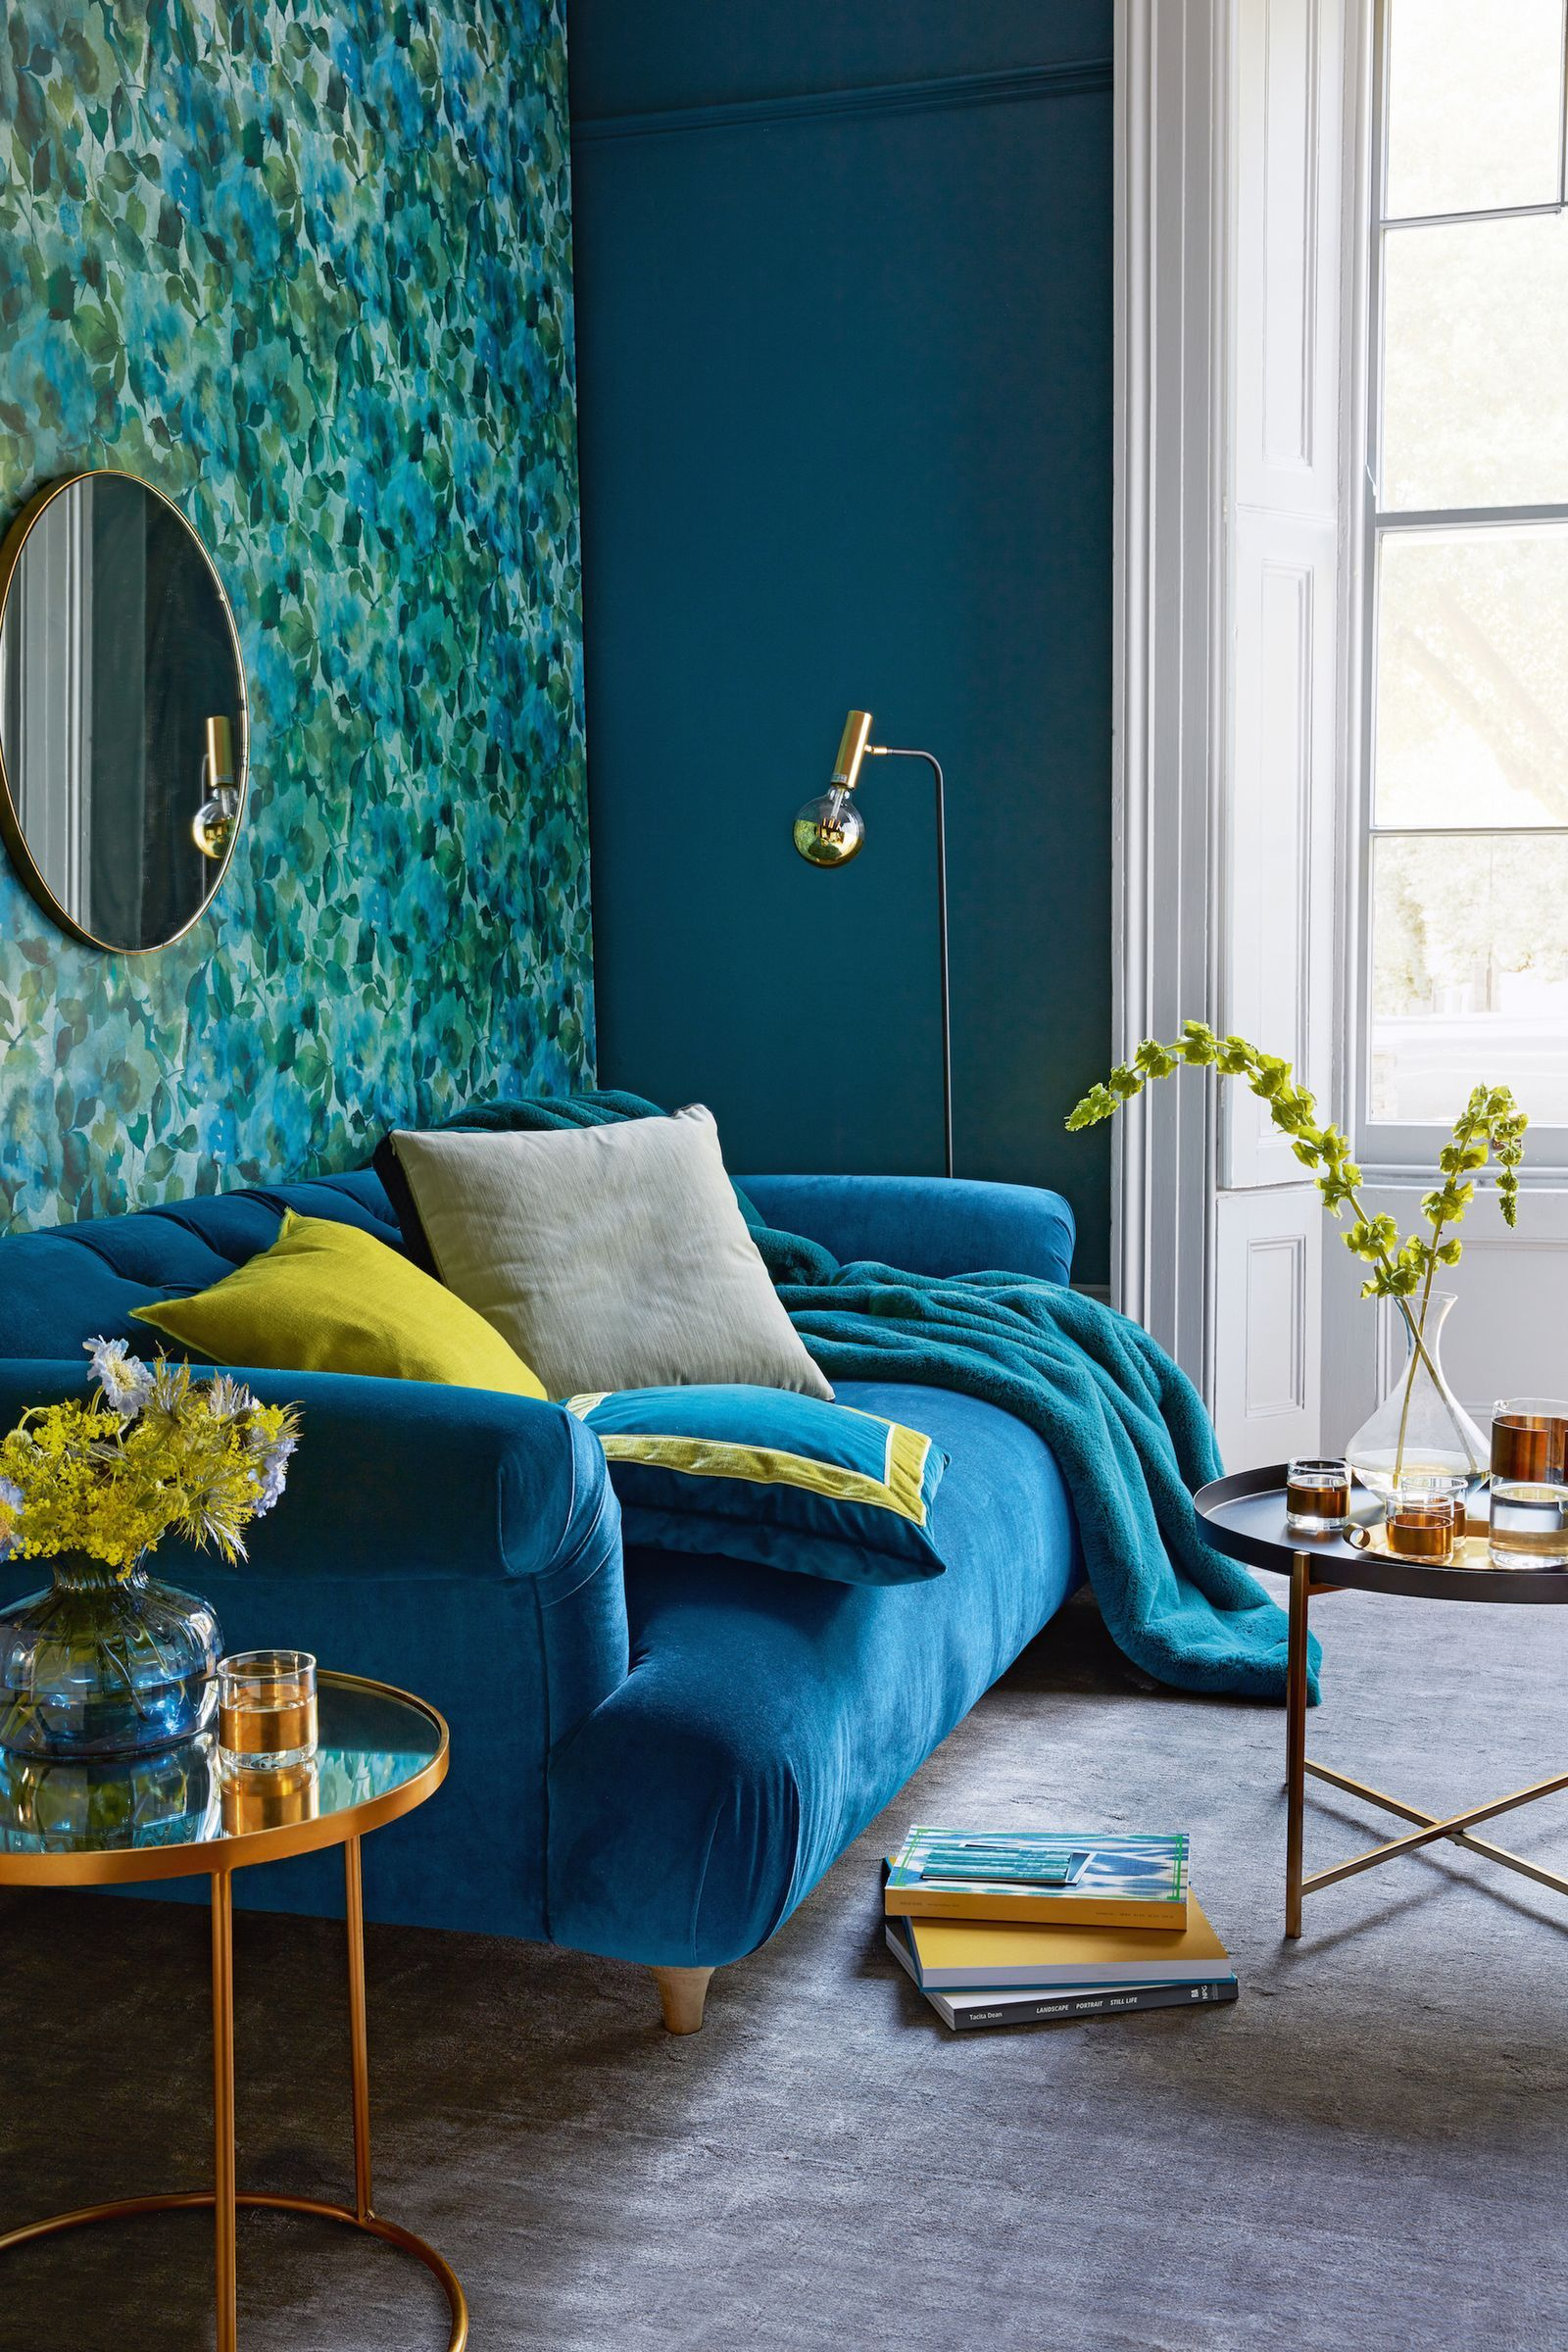 8 Photos That Will Make You Want To Decorate With Velvet Immediately Minimalist Living Room Decor Living Room Turquoise Small Apartment Decorating Living Room